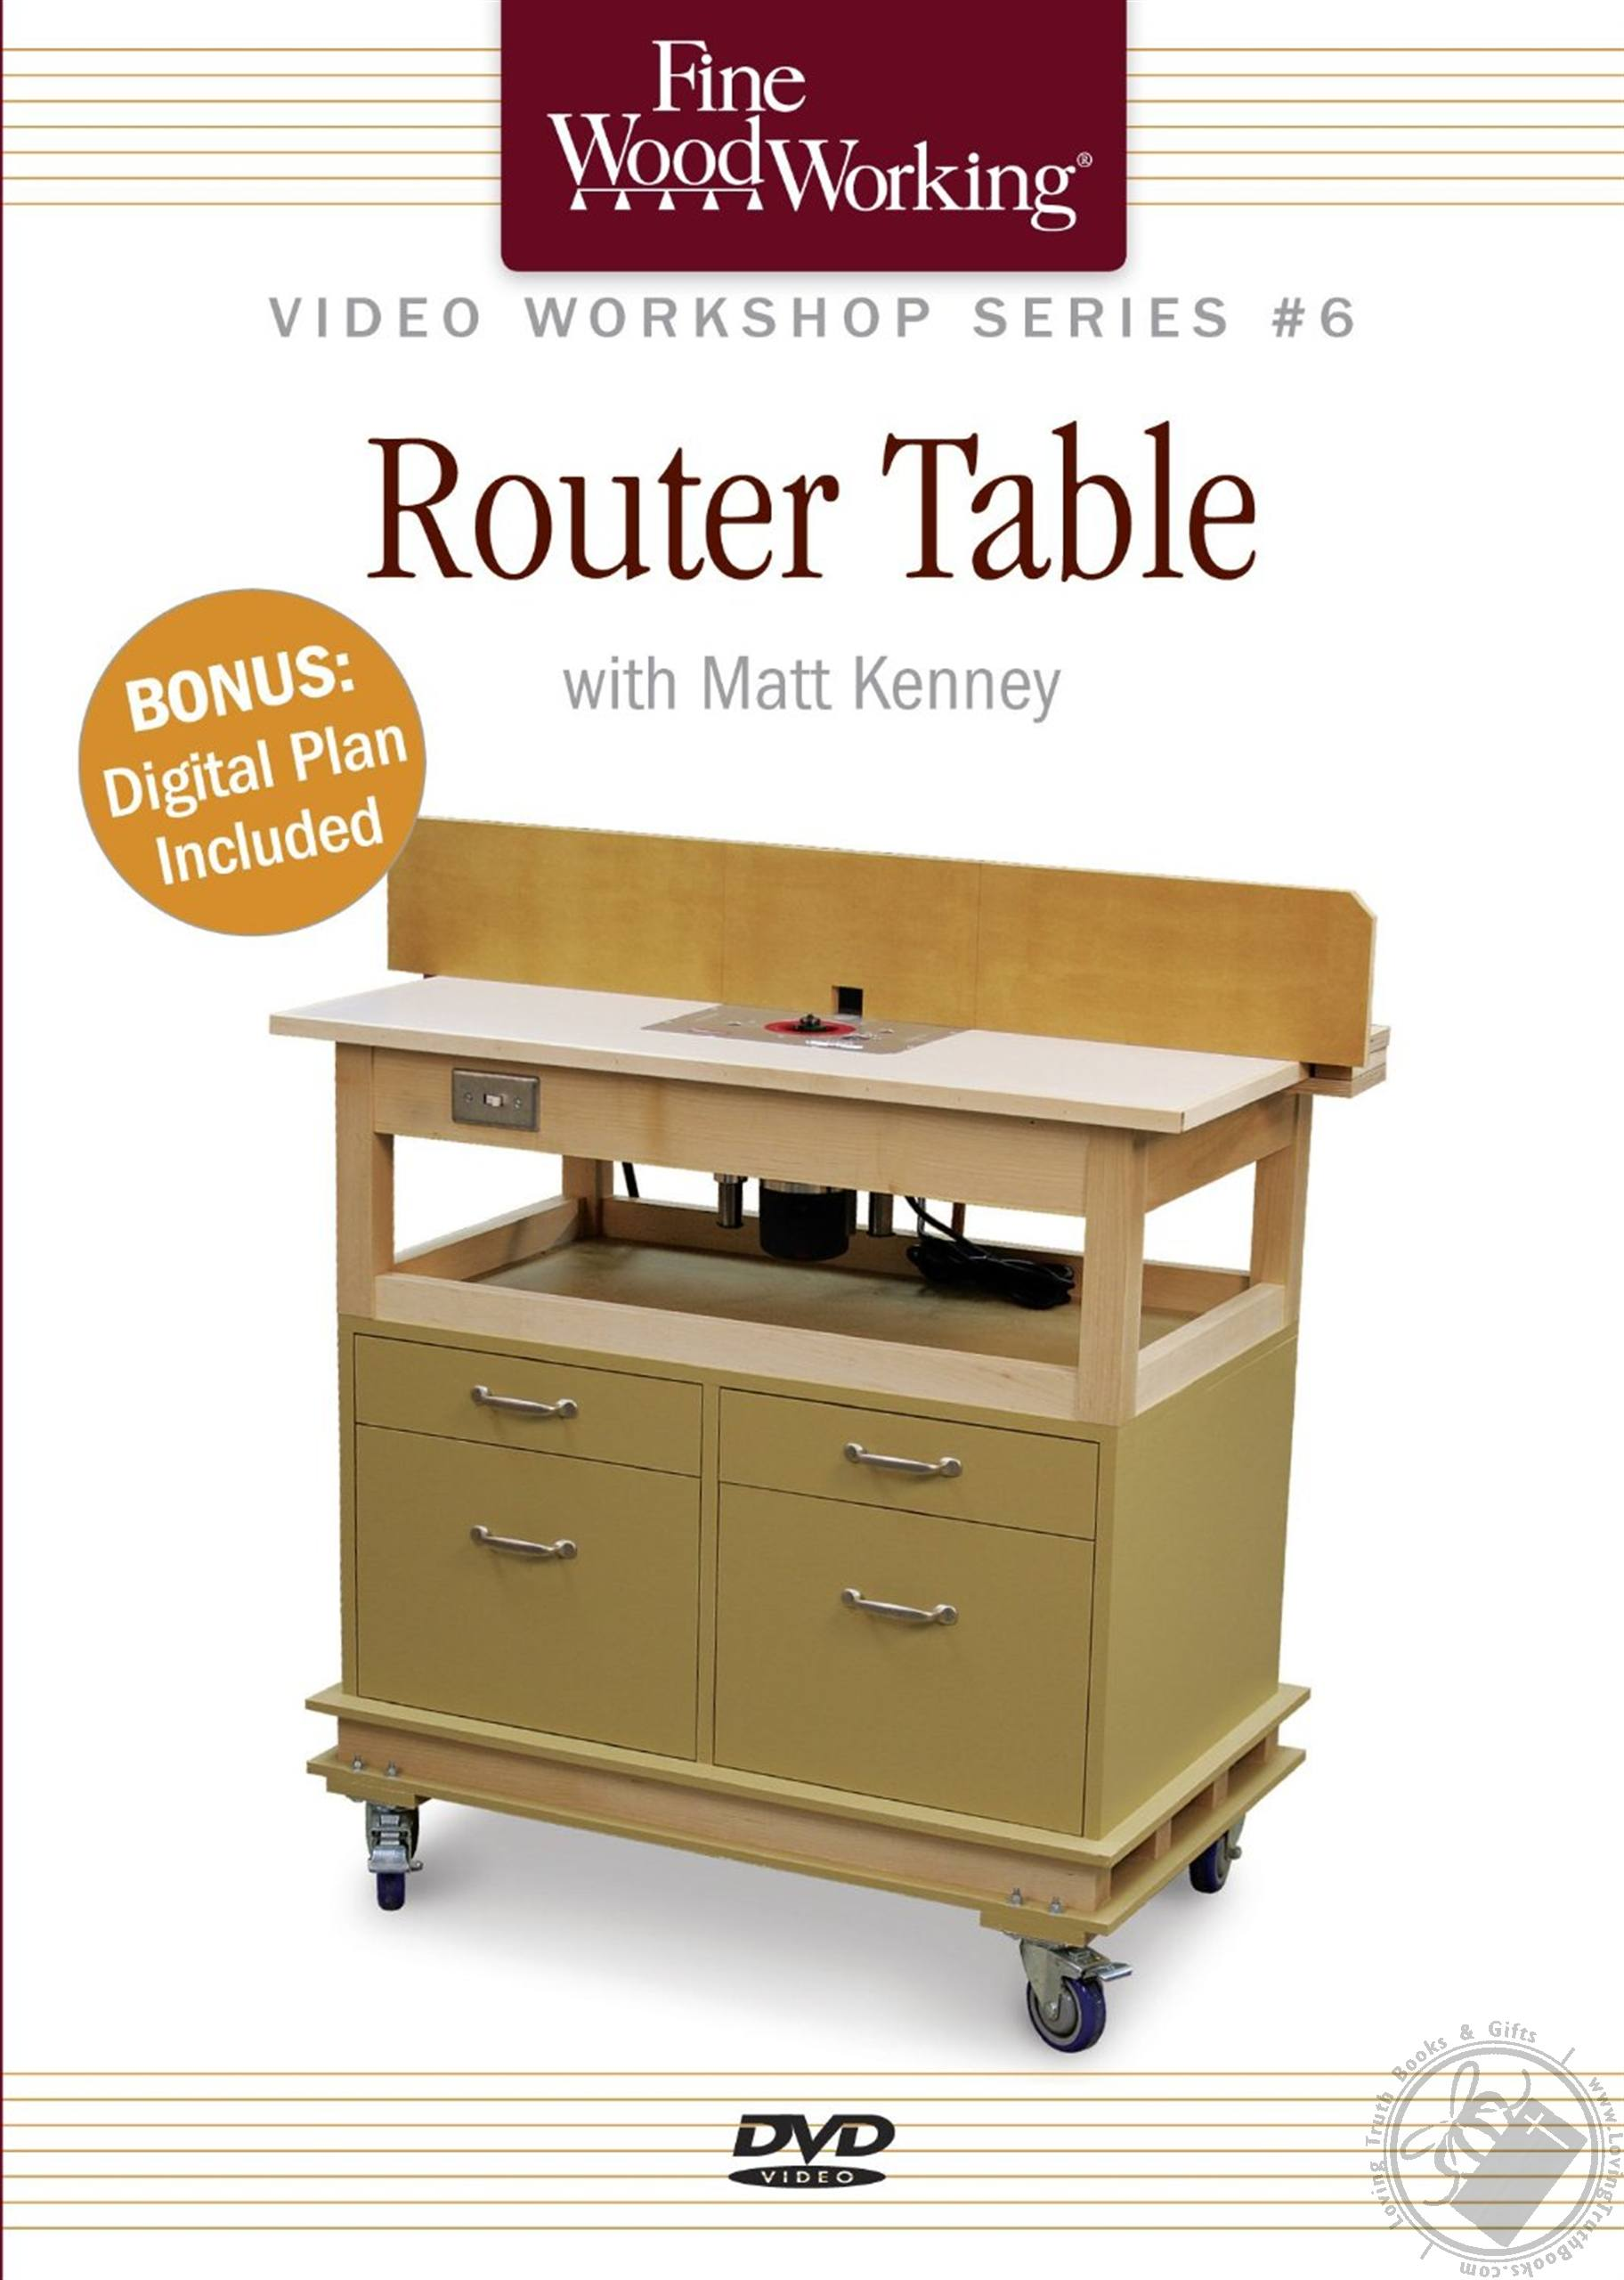 Router Table With Matt Kenney Includes Digital Plan A Fine Woodworking Dvd Workshop By Matt Kenney Dvd Spoken Word Loving Truth Books Gifts